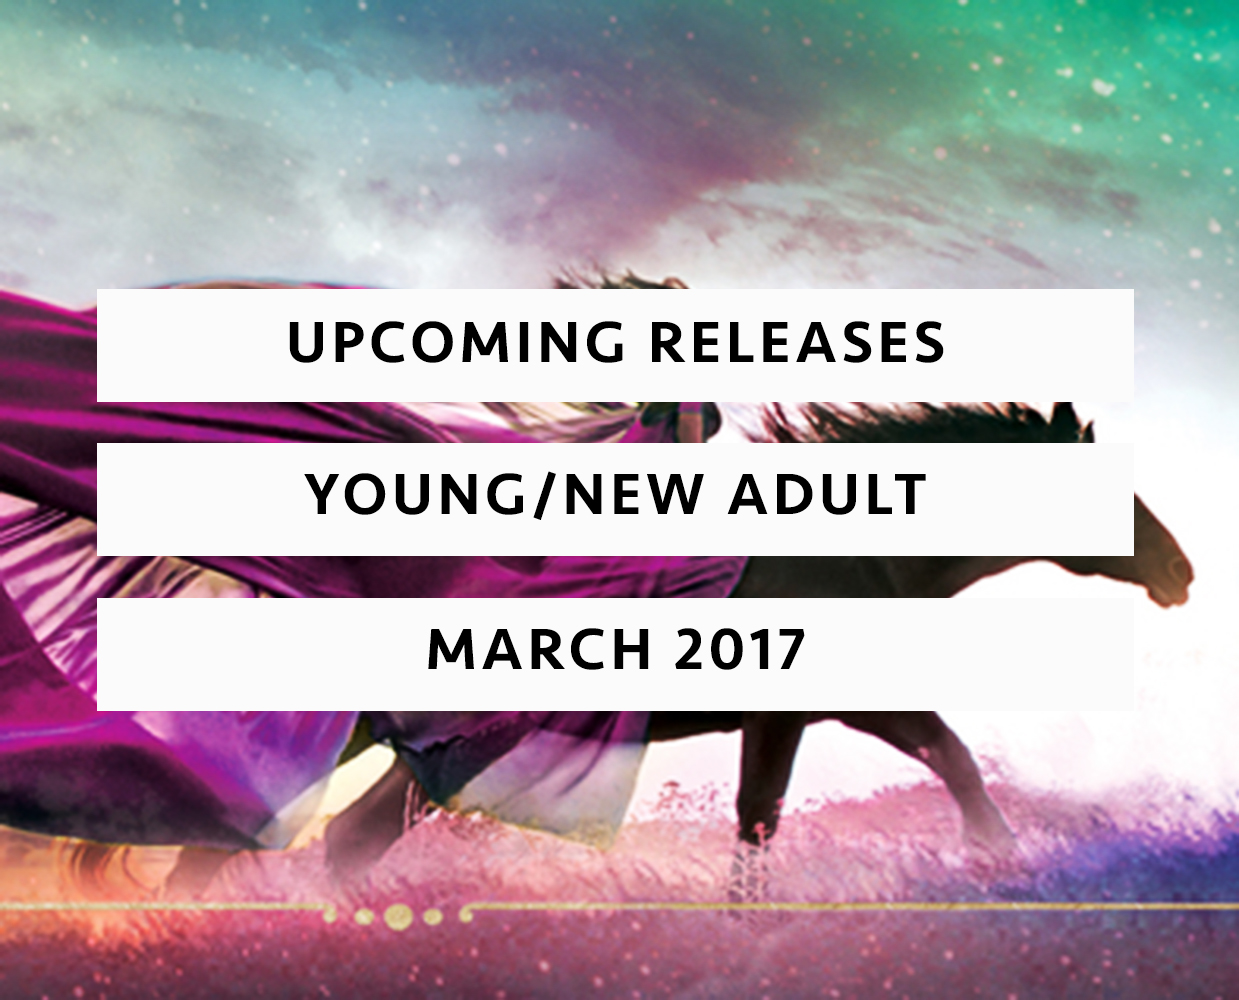 upcoming releases march 2017